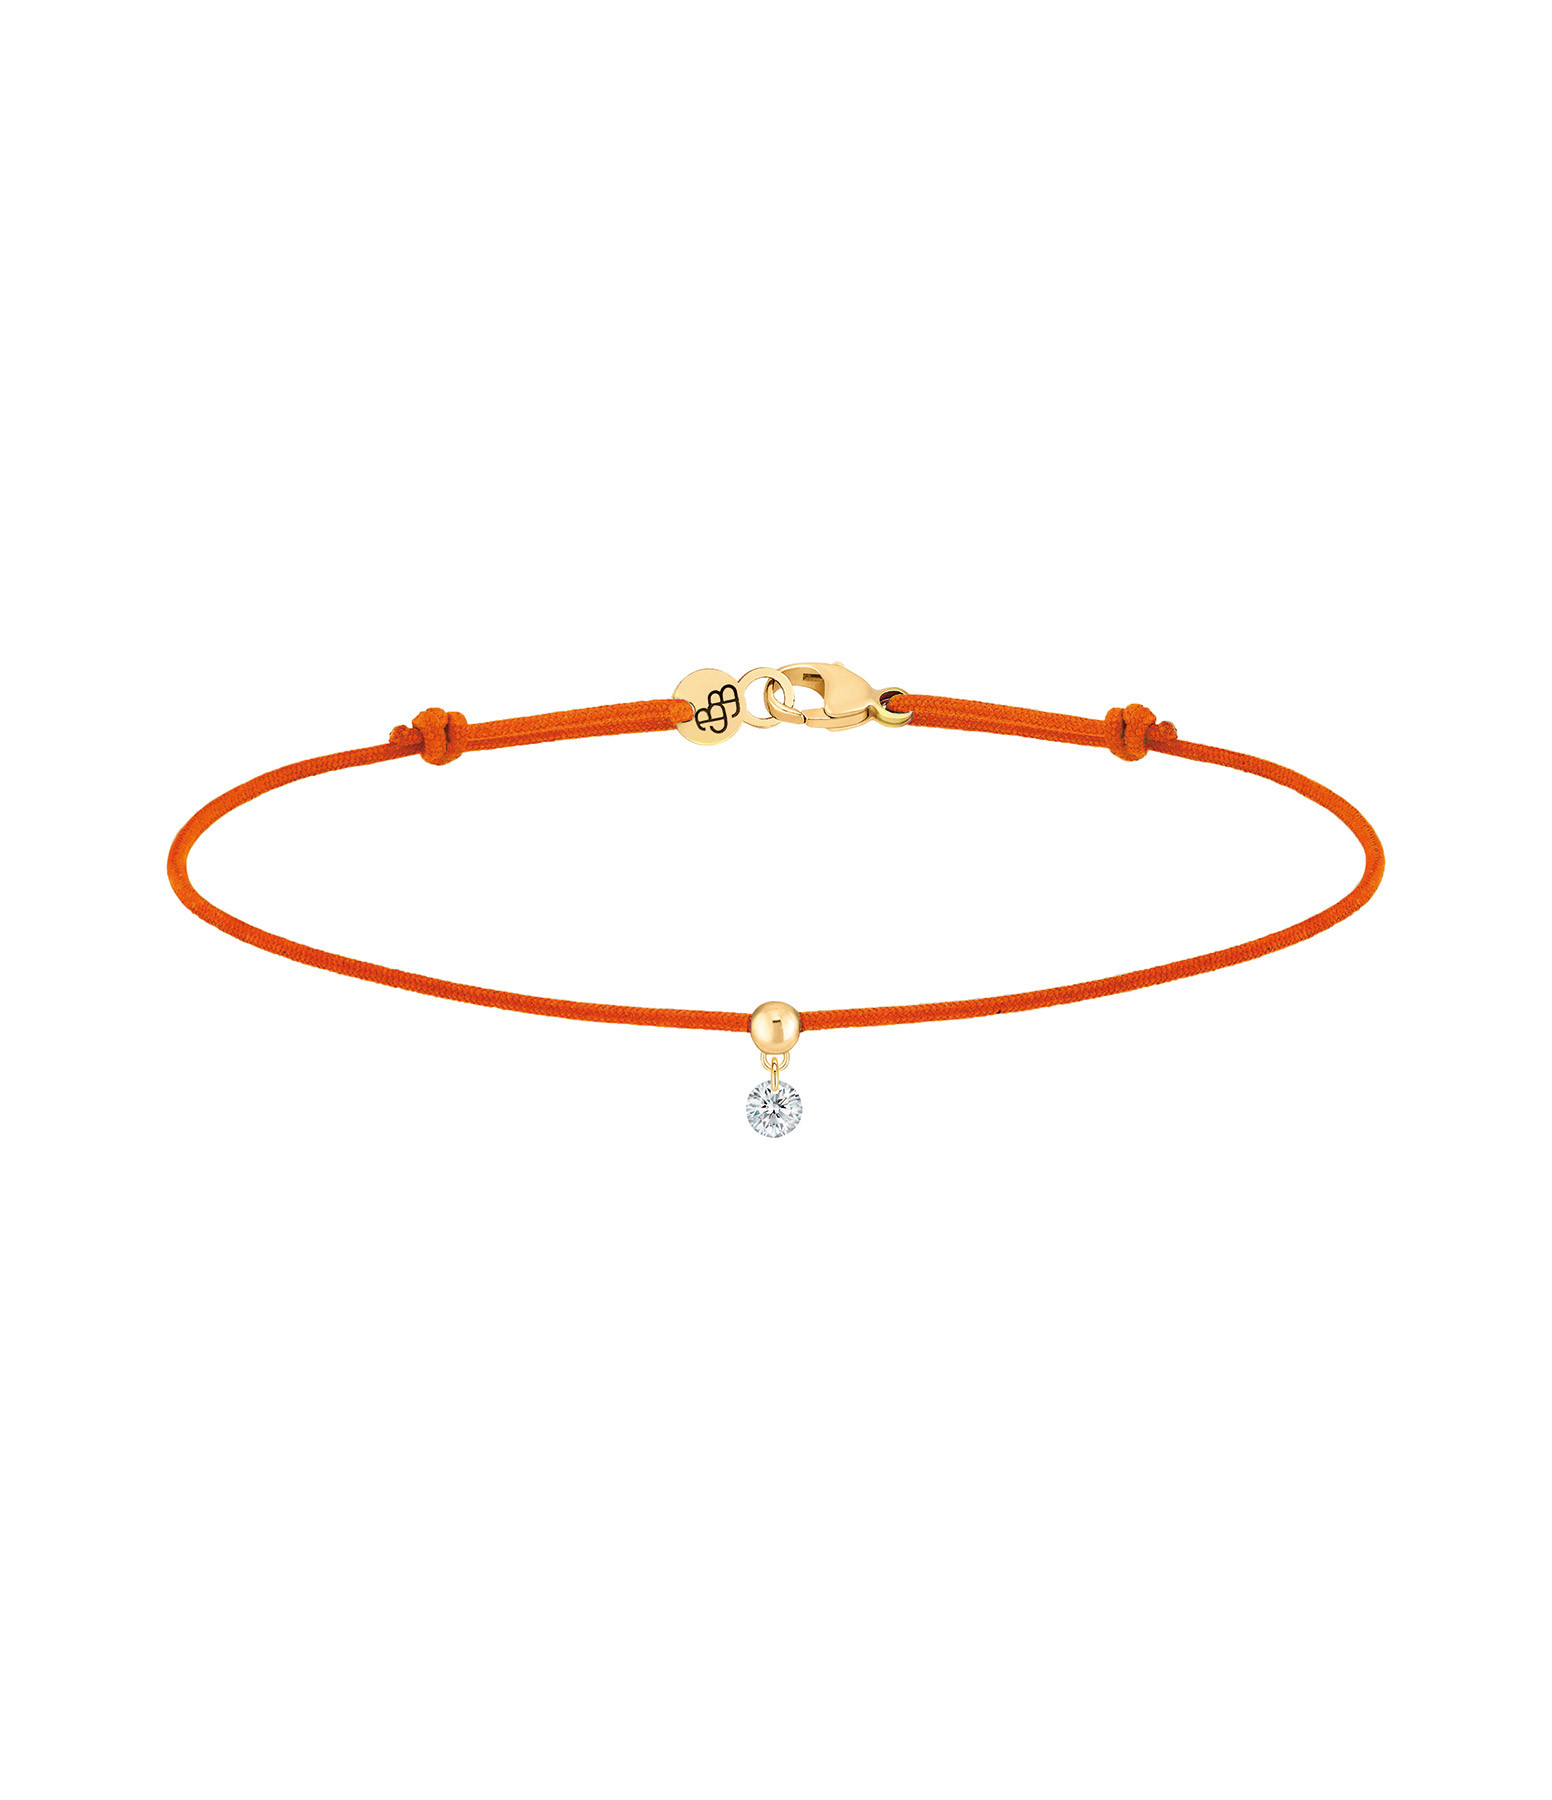 LA BRUNE & LA BLONDE - Bracelet BB Diamant Brillant Cordon Orange Or Jaune